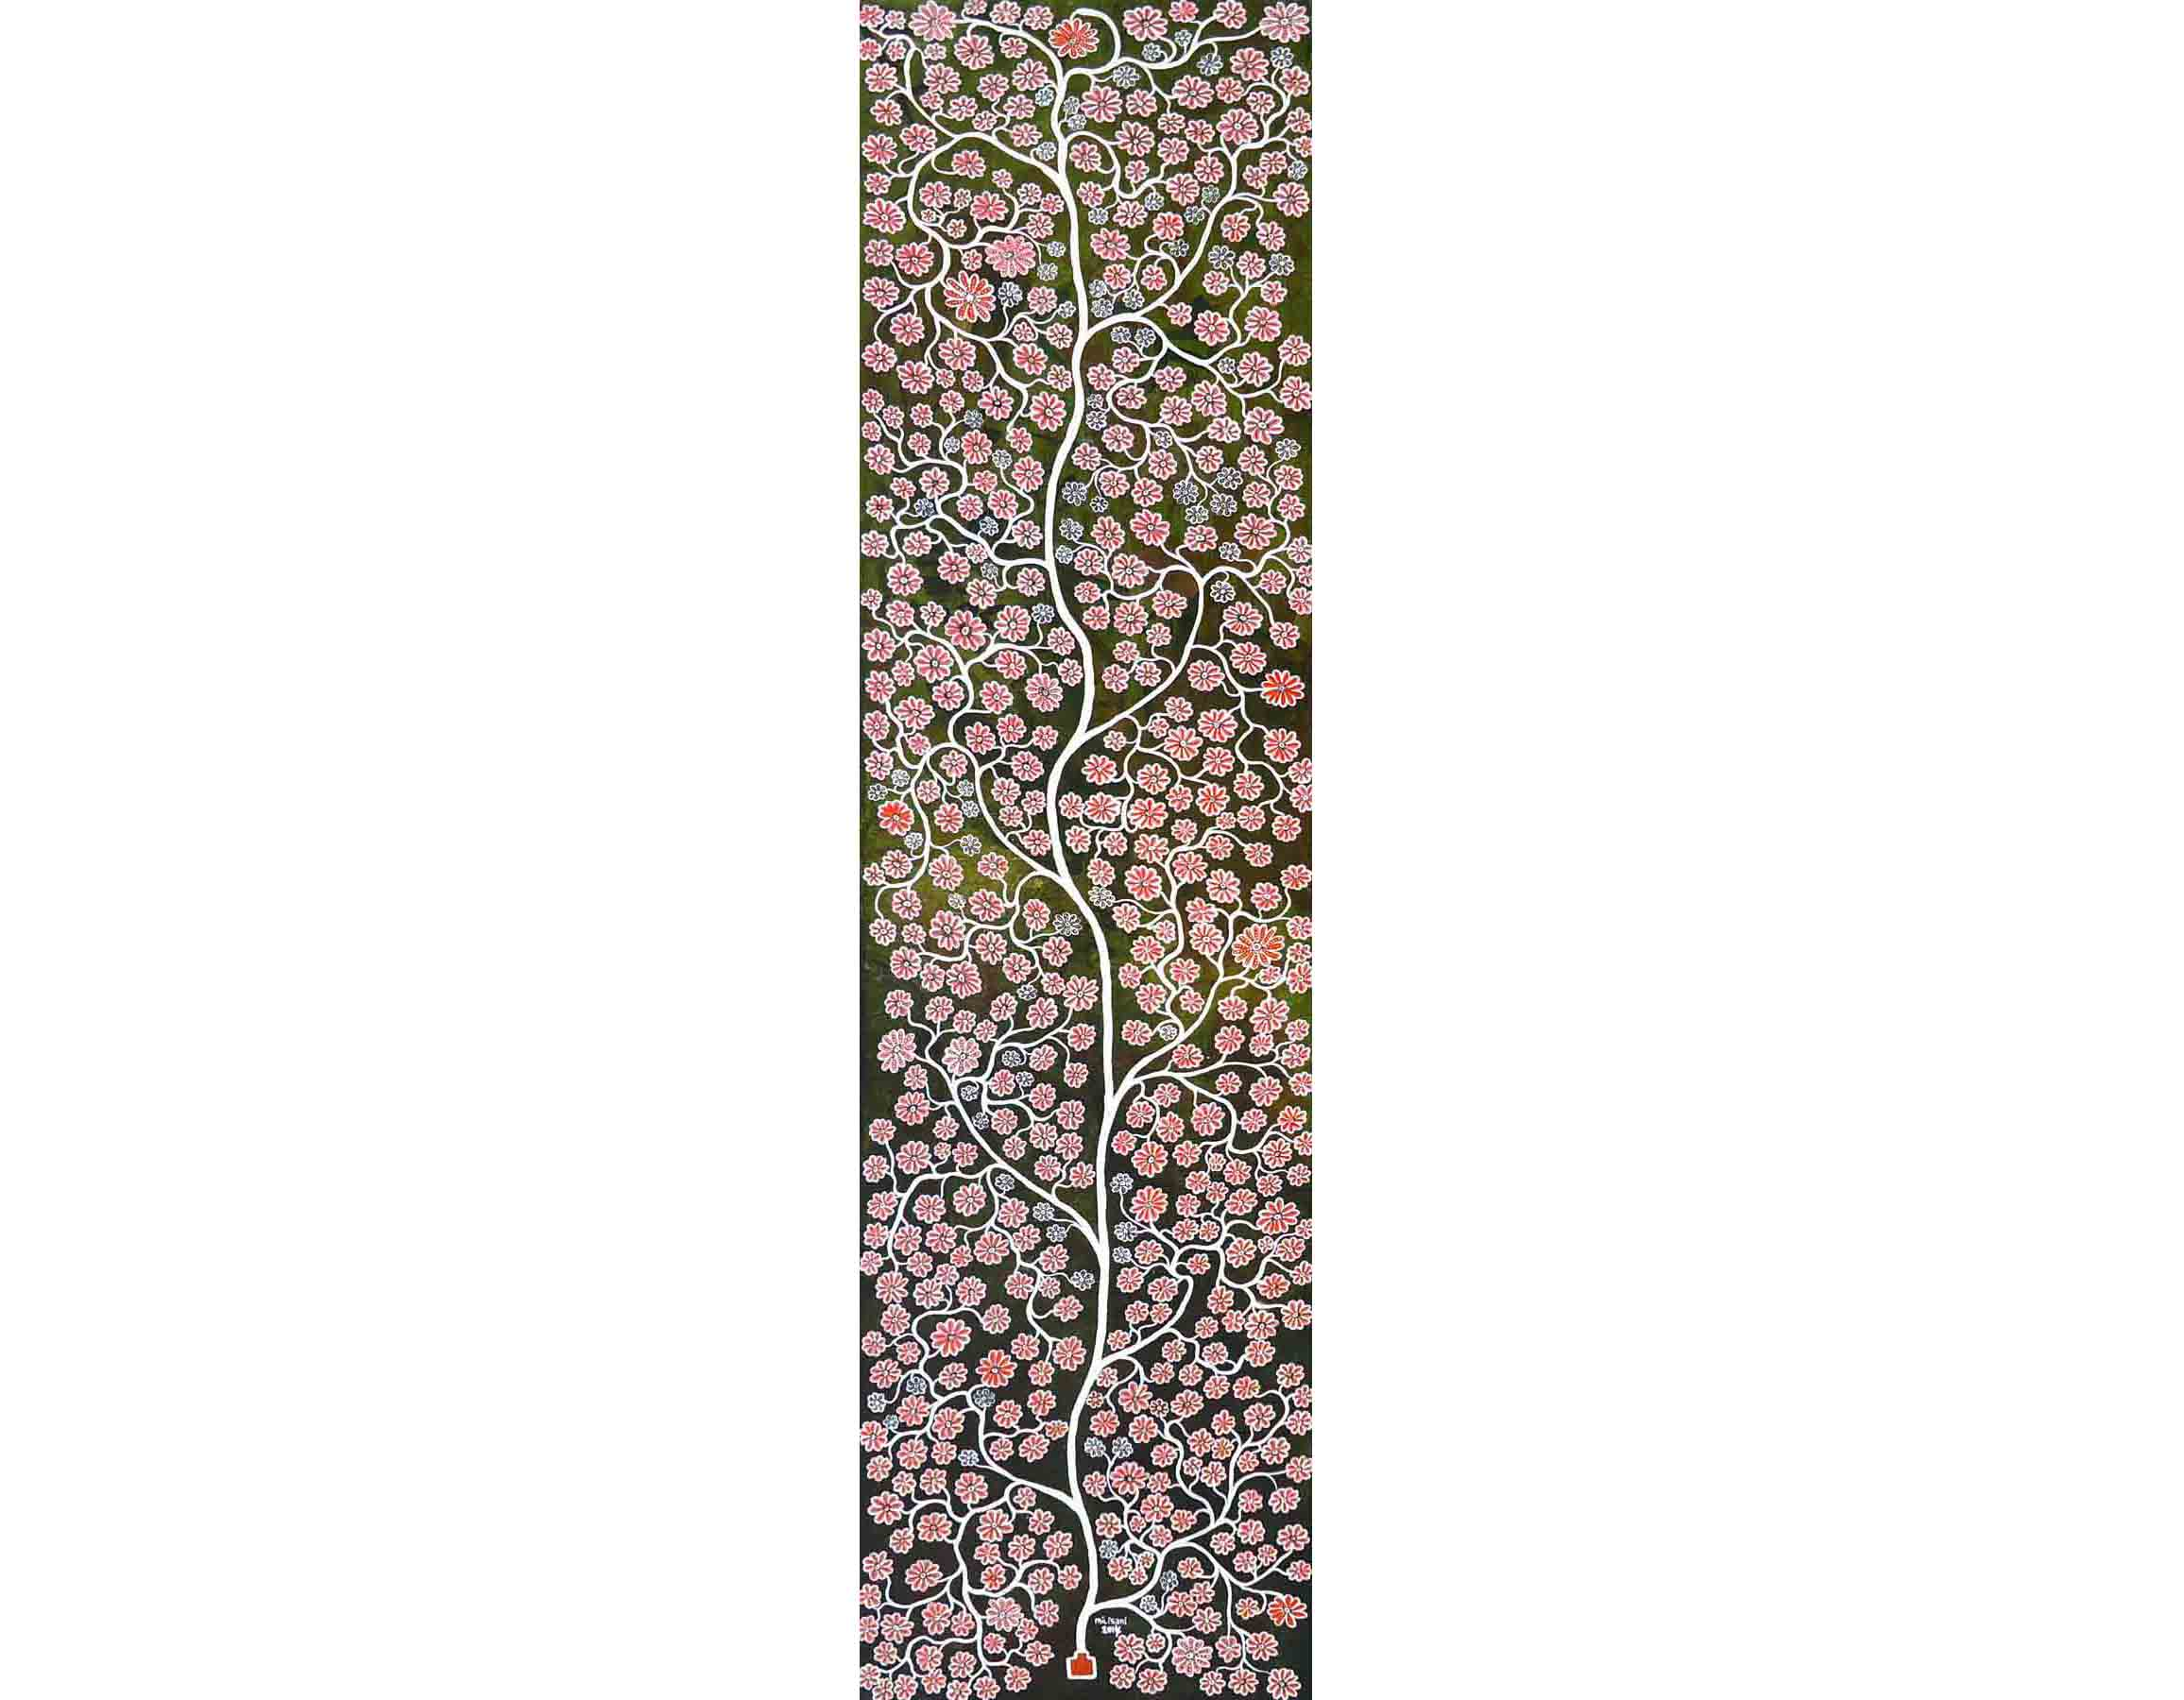 Pink Flowers, 200 x 50 cm, 2014, Acrylic on Canvas